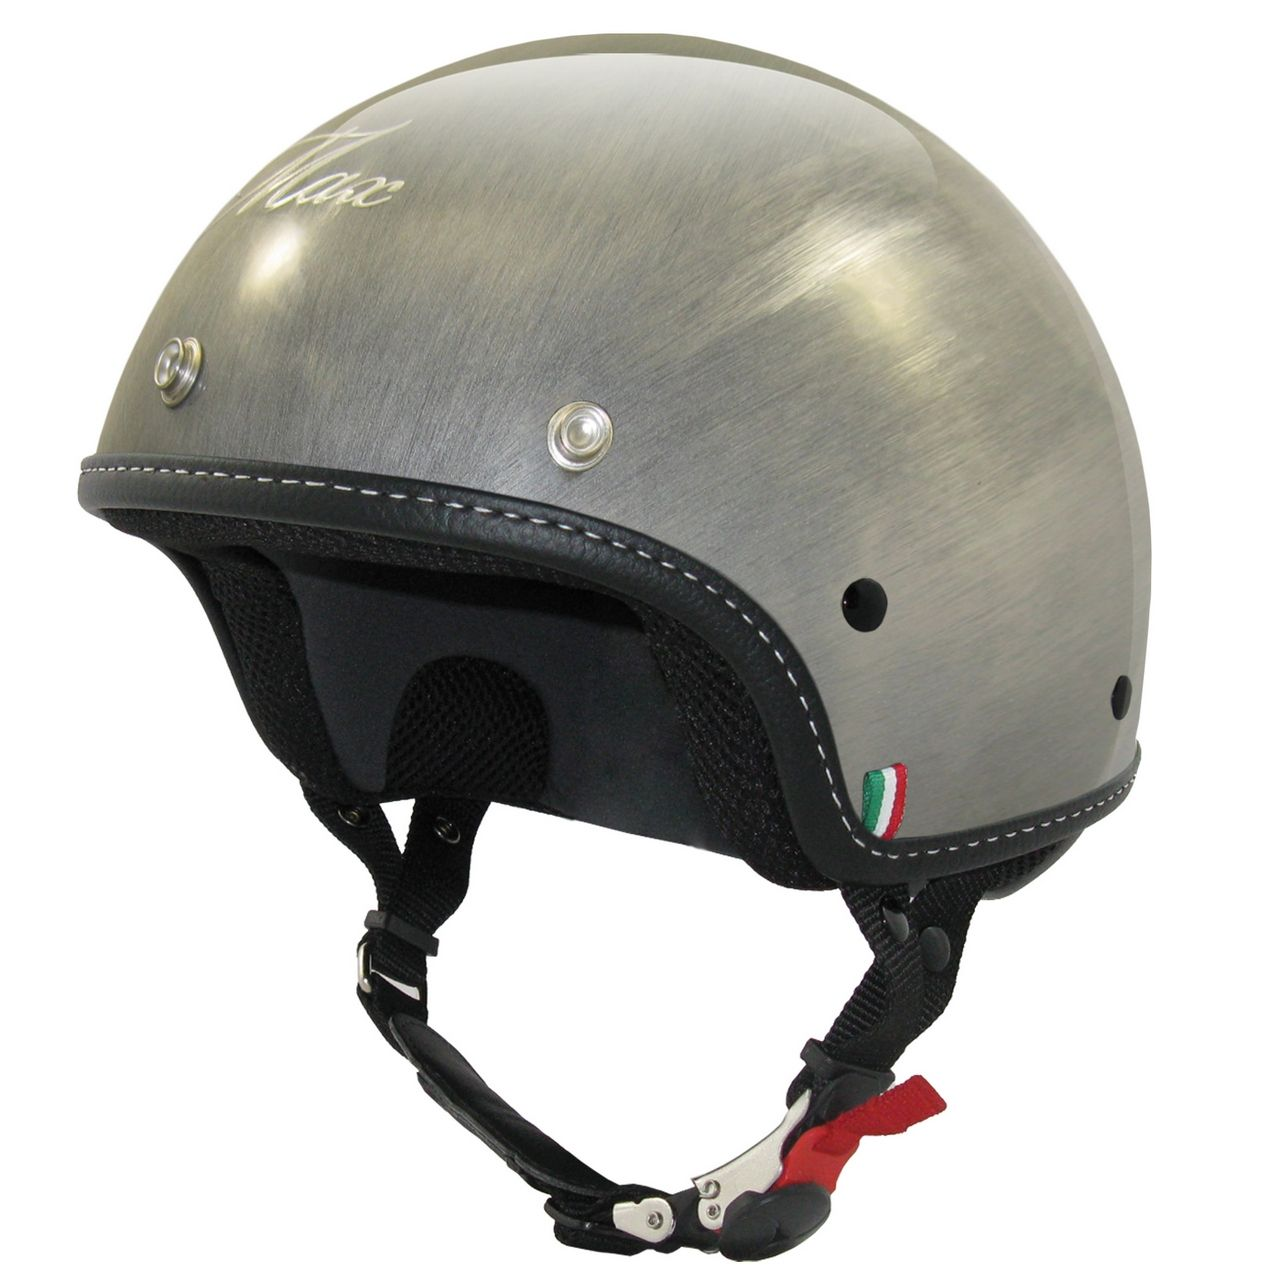 MAX HELMET DJET MINI SCRATCH 小尺寸半罩头盔(半盔)